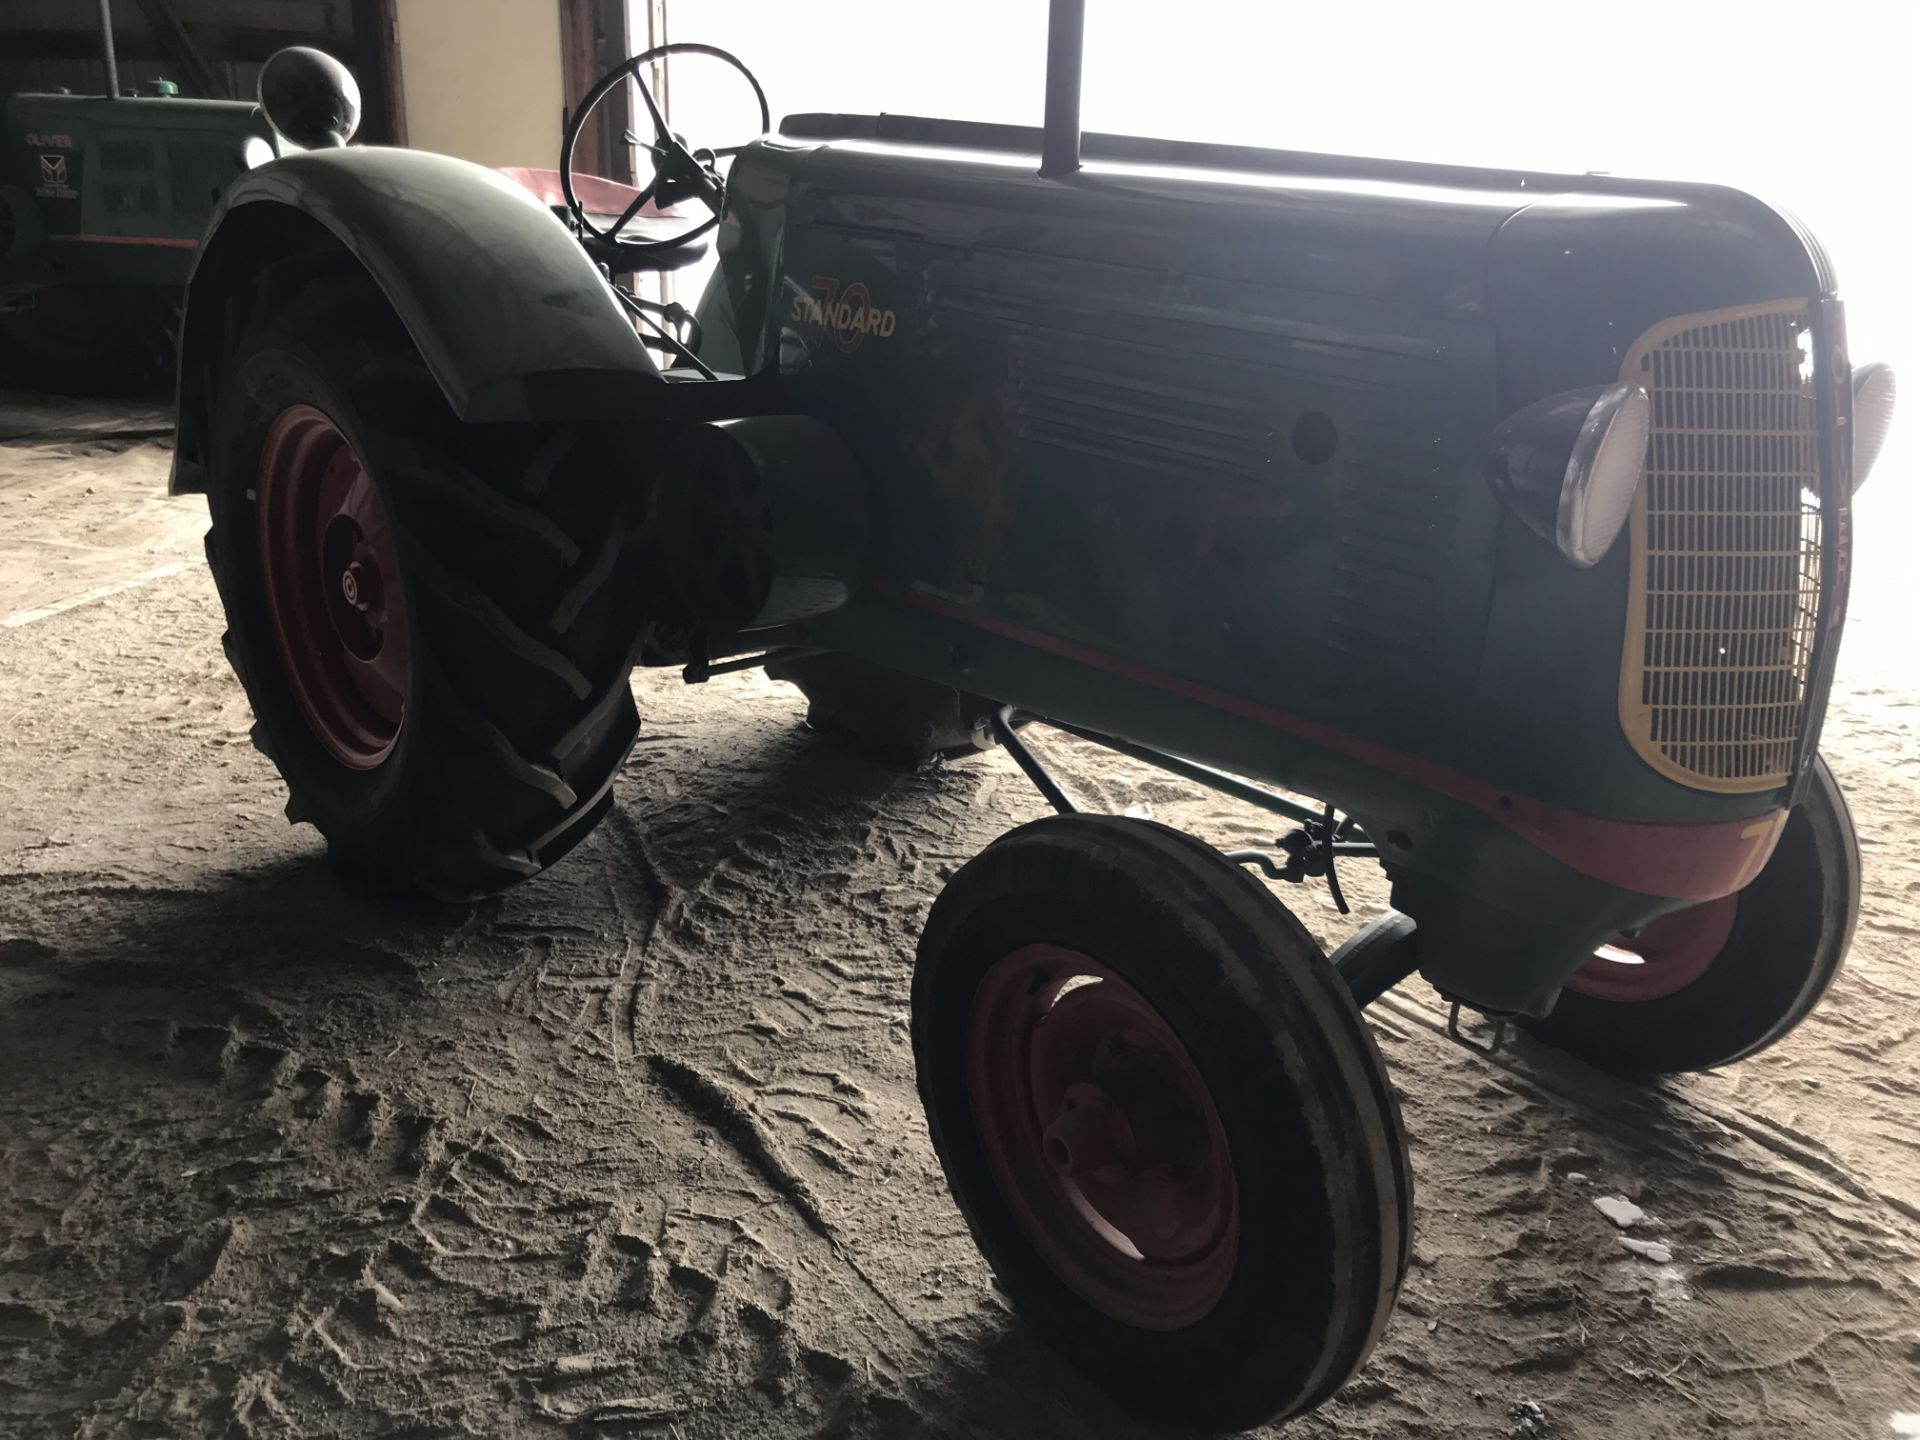 Lot 6 - Mdl.70 Standard, New Rubber (restored)